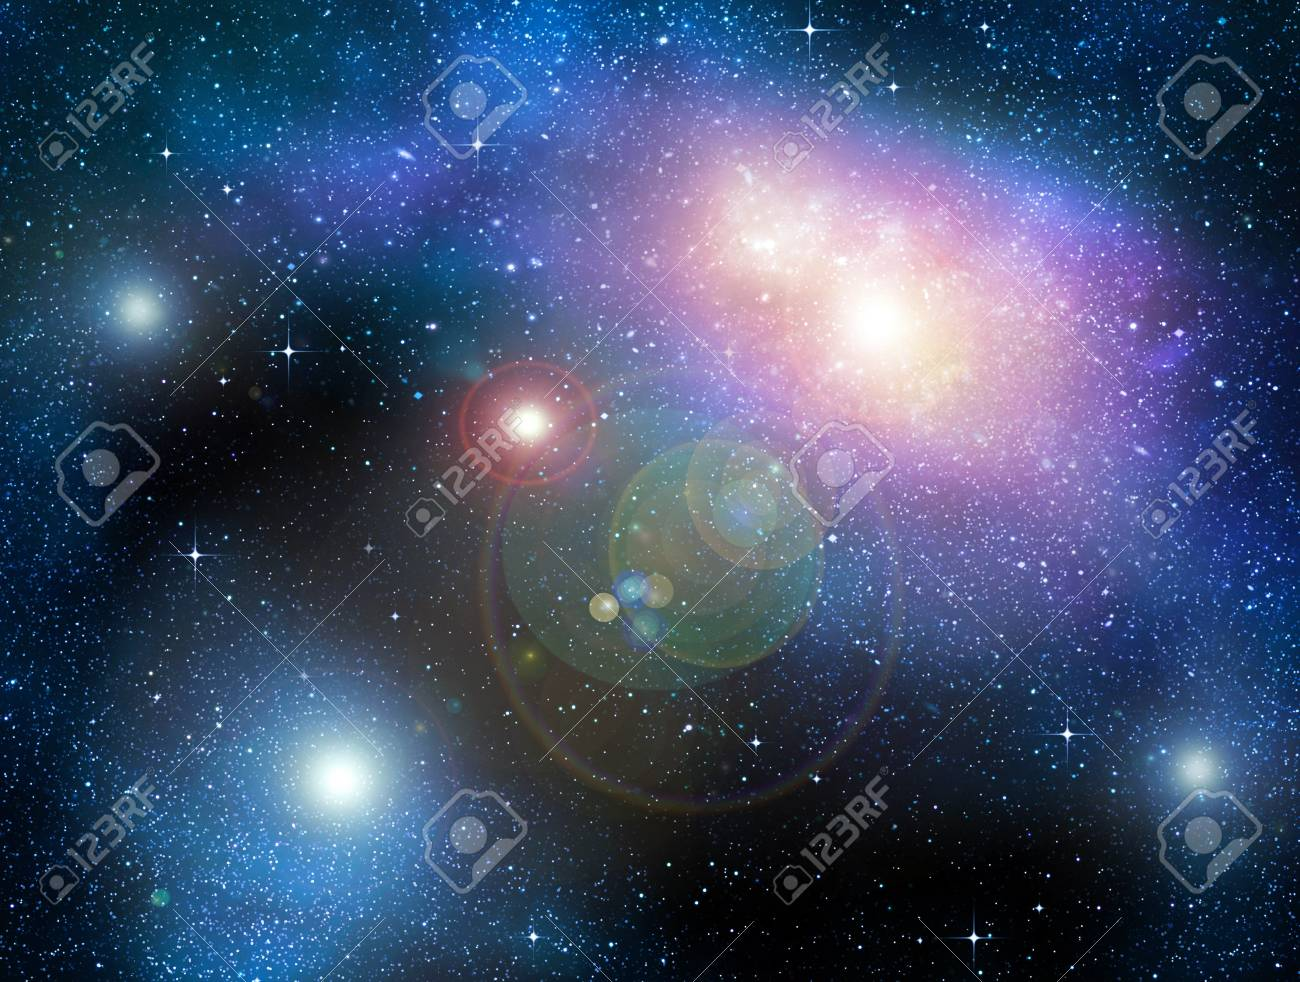 deep outer space background with stars and nebula Stock Photo - 8767295